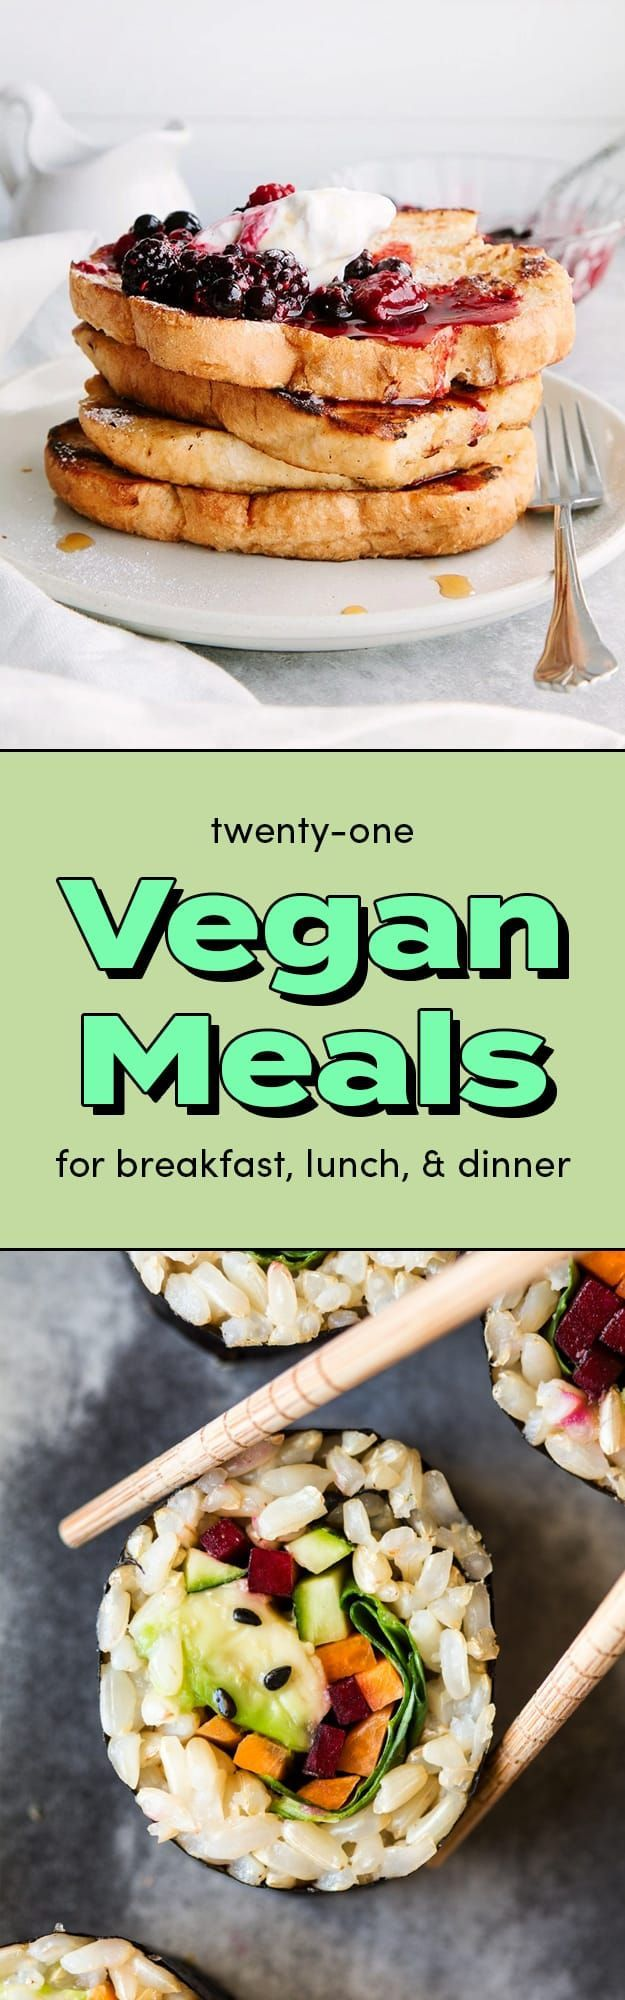 Heres 21 Breakfast, Lunch, And Dinner Recipes With No Meat Or Dairy Remember Wrhel.com - #Wrhel